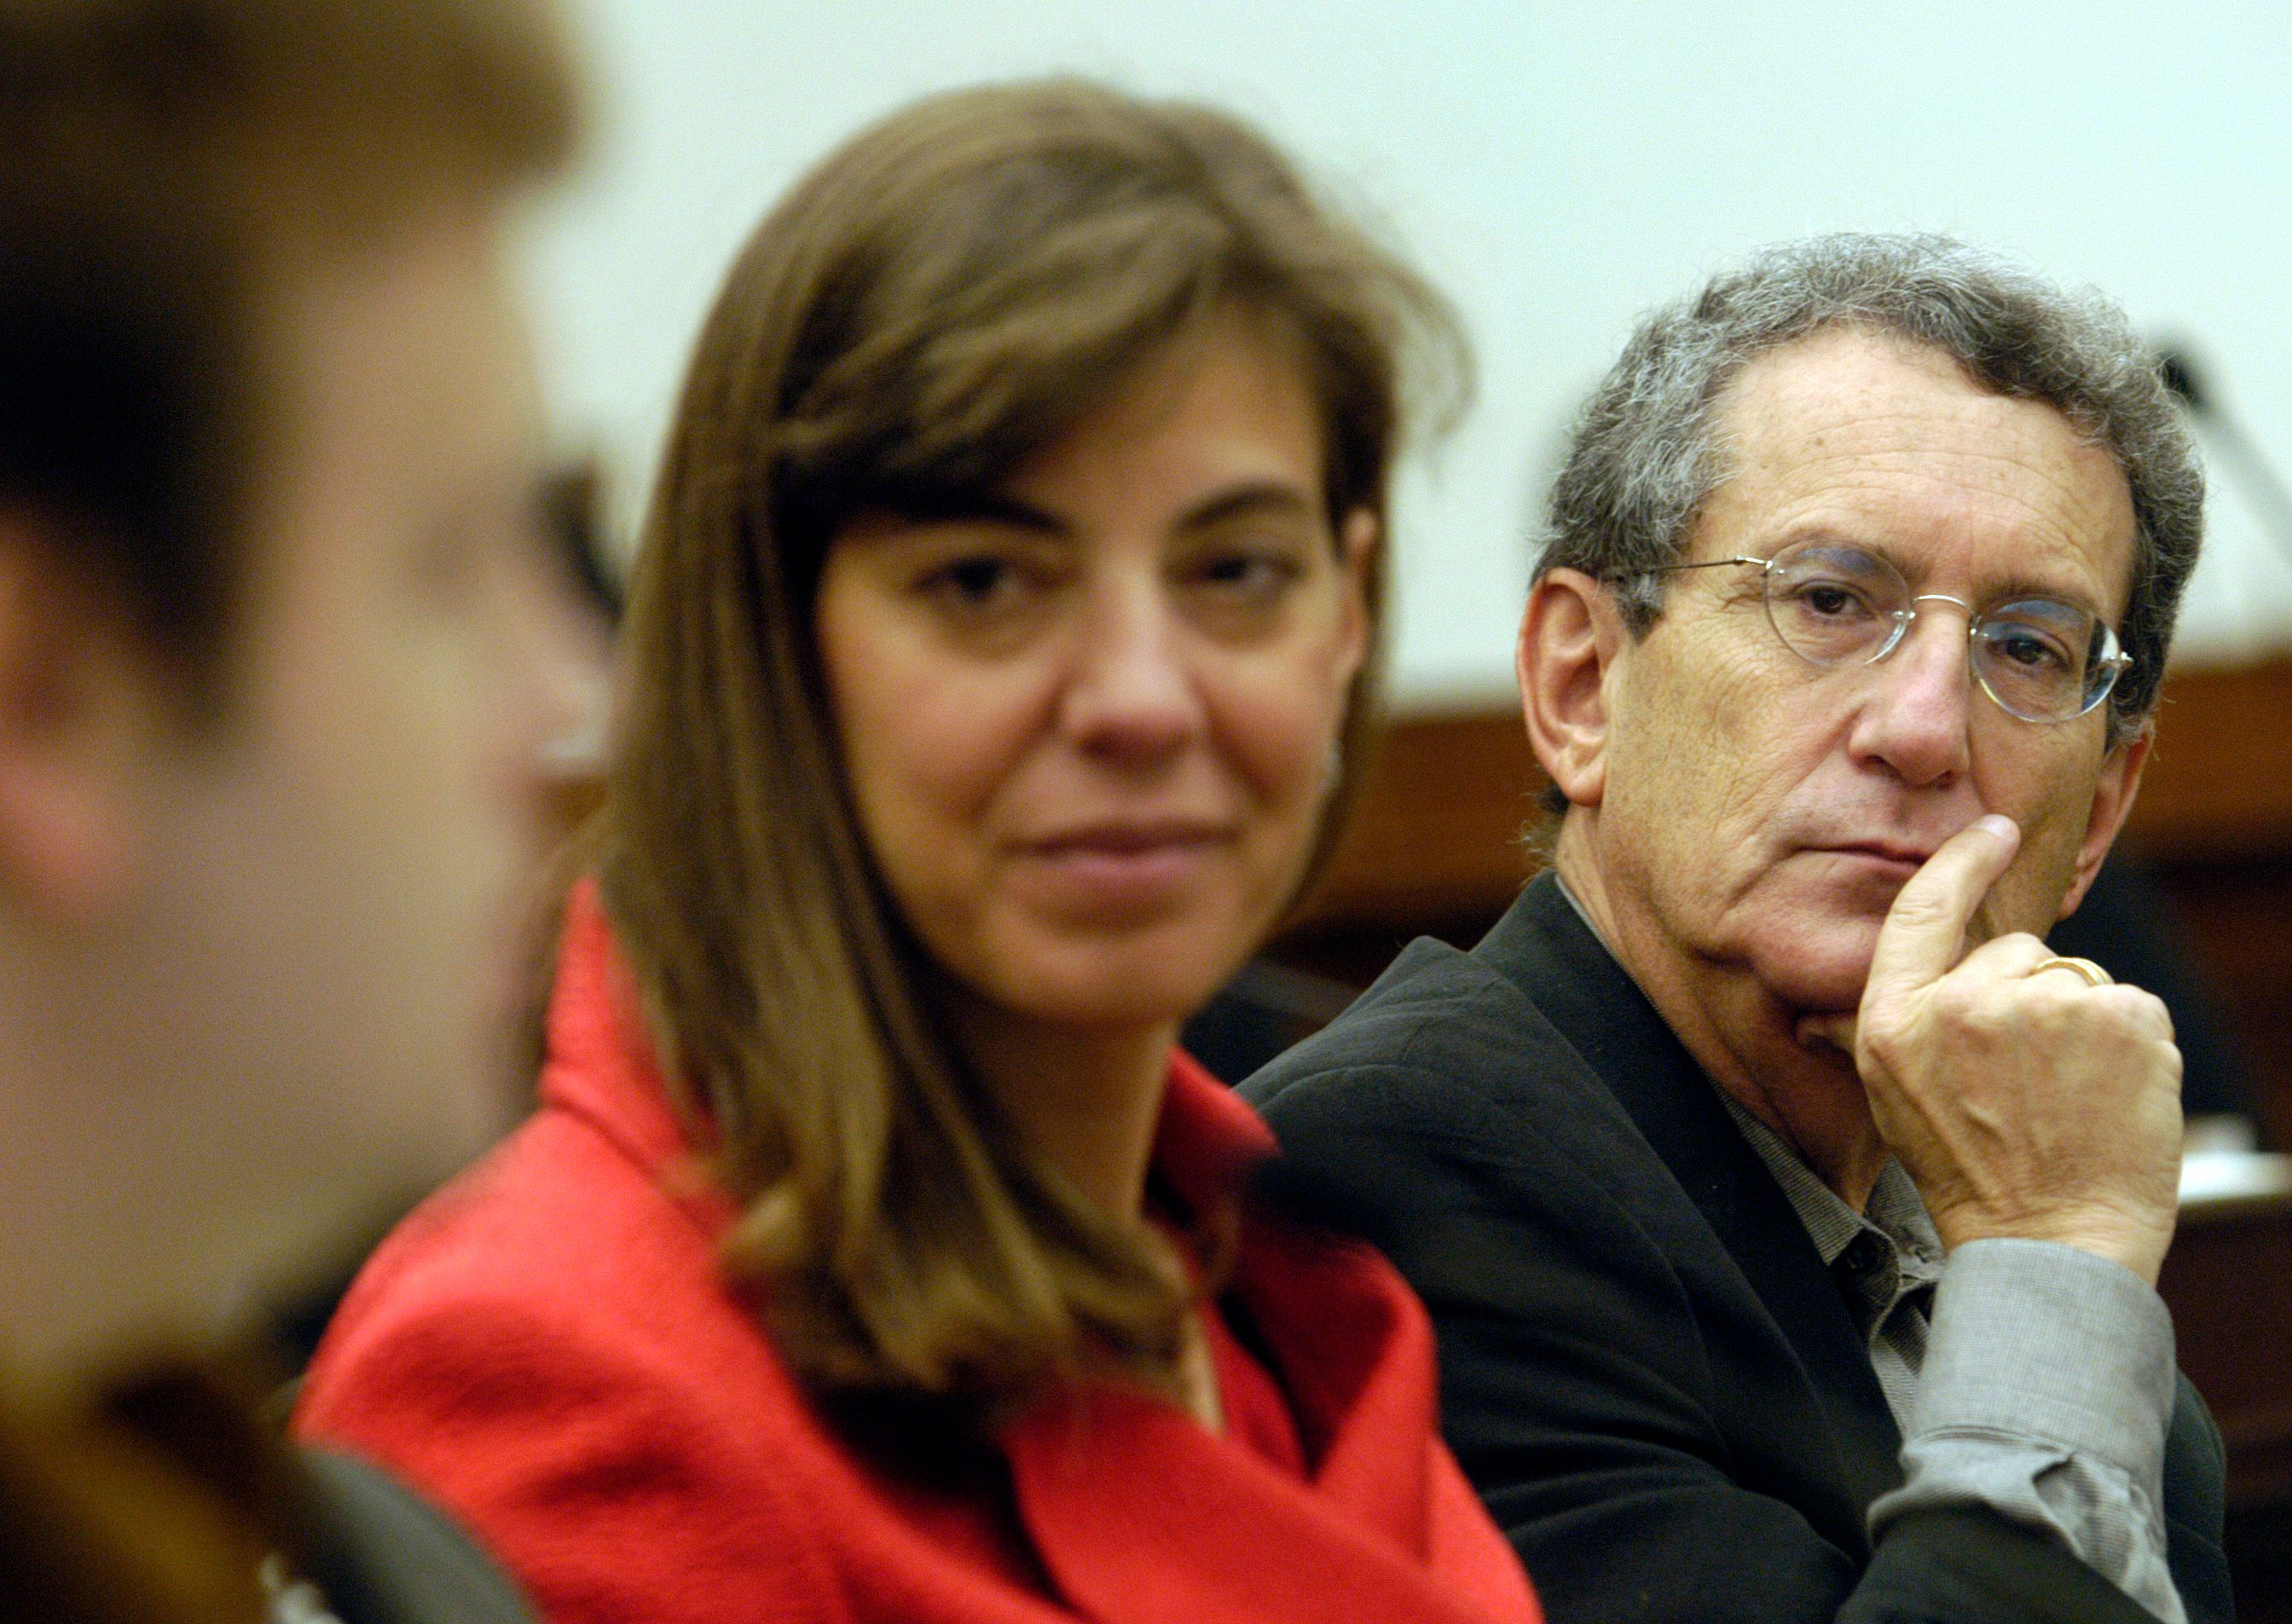 UNITED STATES - NOVEMBER 04:  Stan Greenburg, an advisor to the Kerry campaign and pollster, with The Israel Project president Jennifer Laszlo Mizrahi, watches pollster Frank Luntz speak at a forum on the 2004 elections, sponsored by the The Israel Project, in the Rayburn office building.  (Photo By Chris Maddaloni/Roll Call/Getty Images)